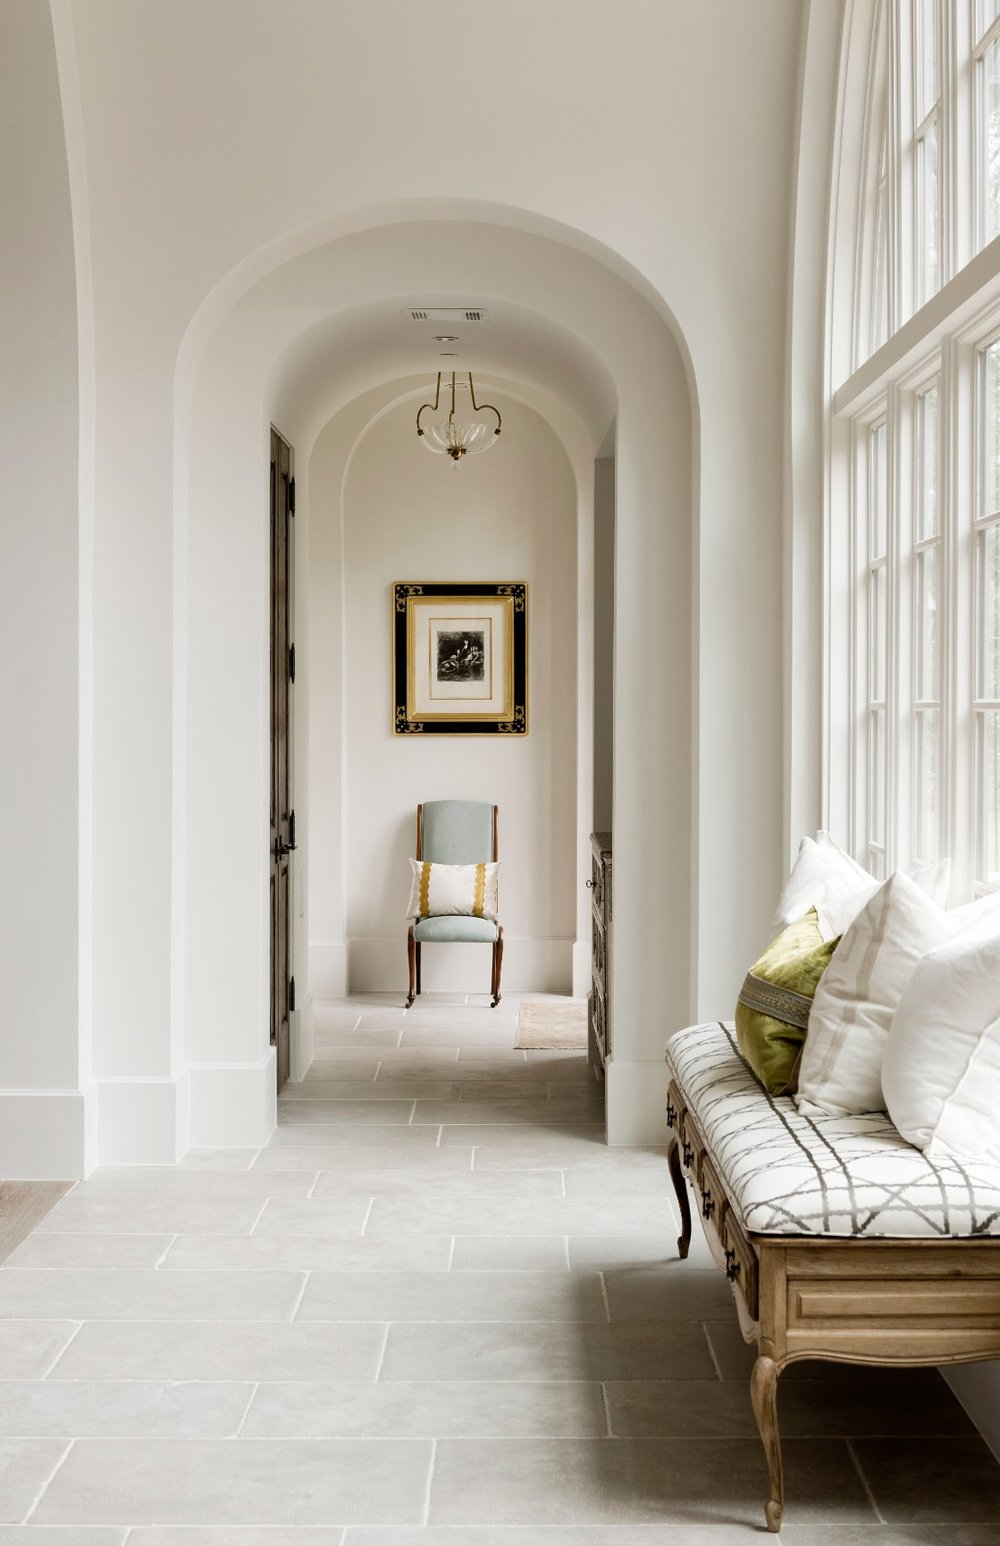 6 amazing arches that will take your breath away! photo via Dodson Interiors